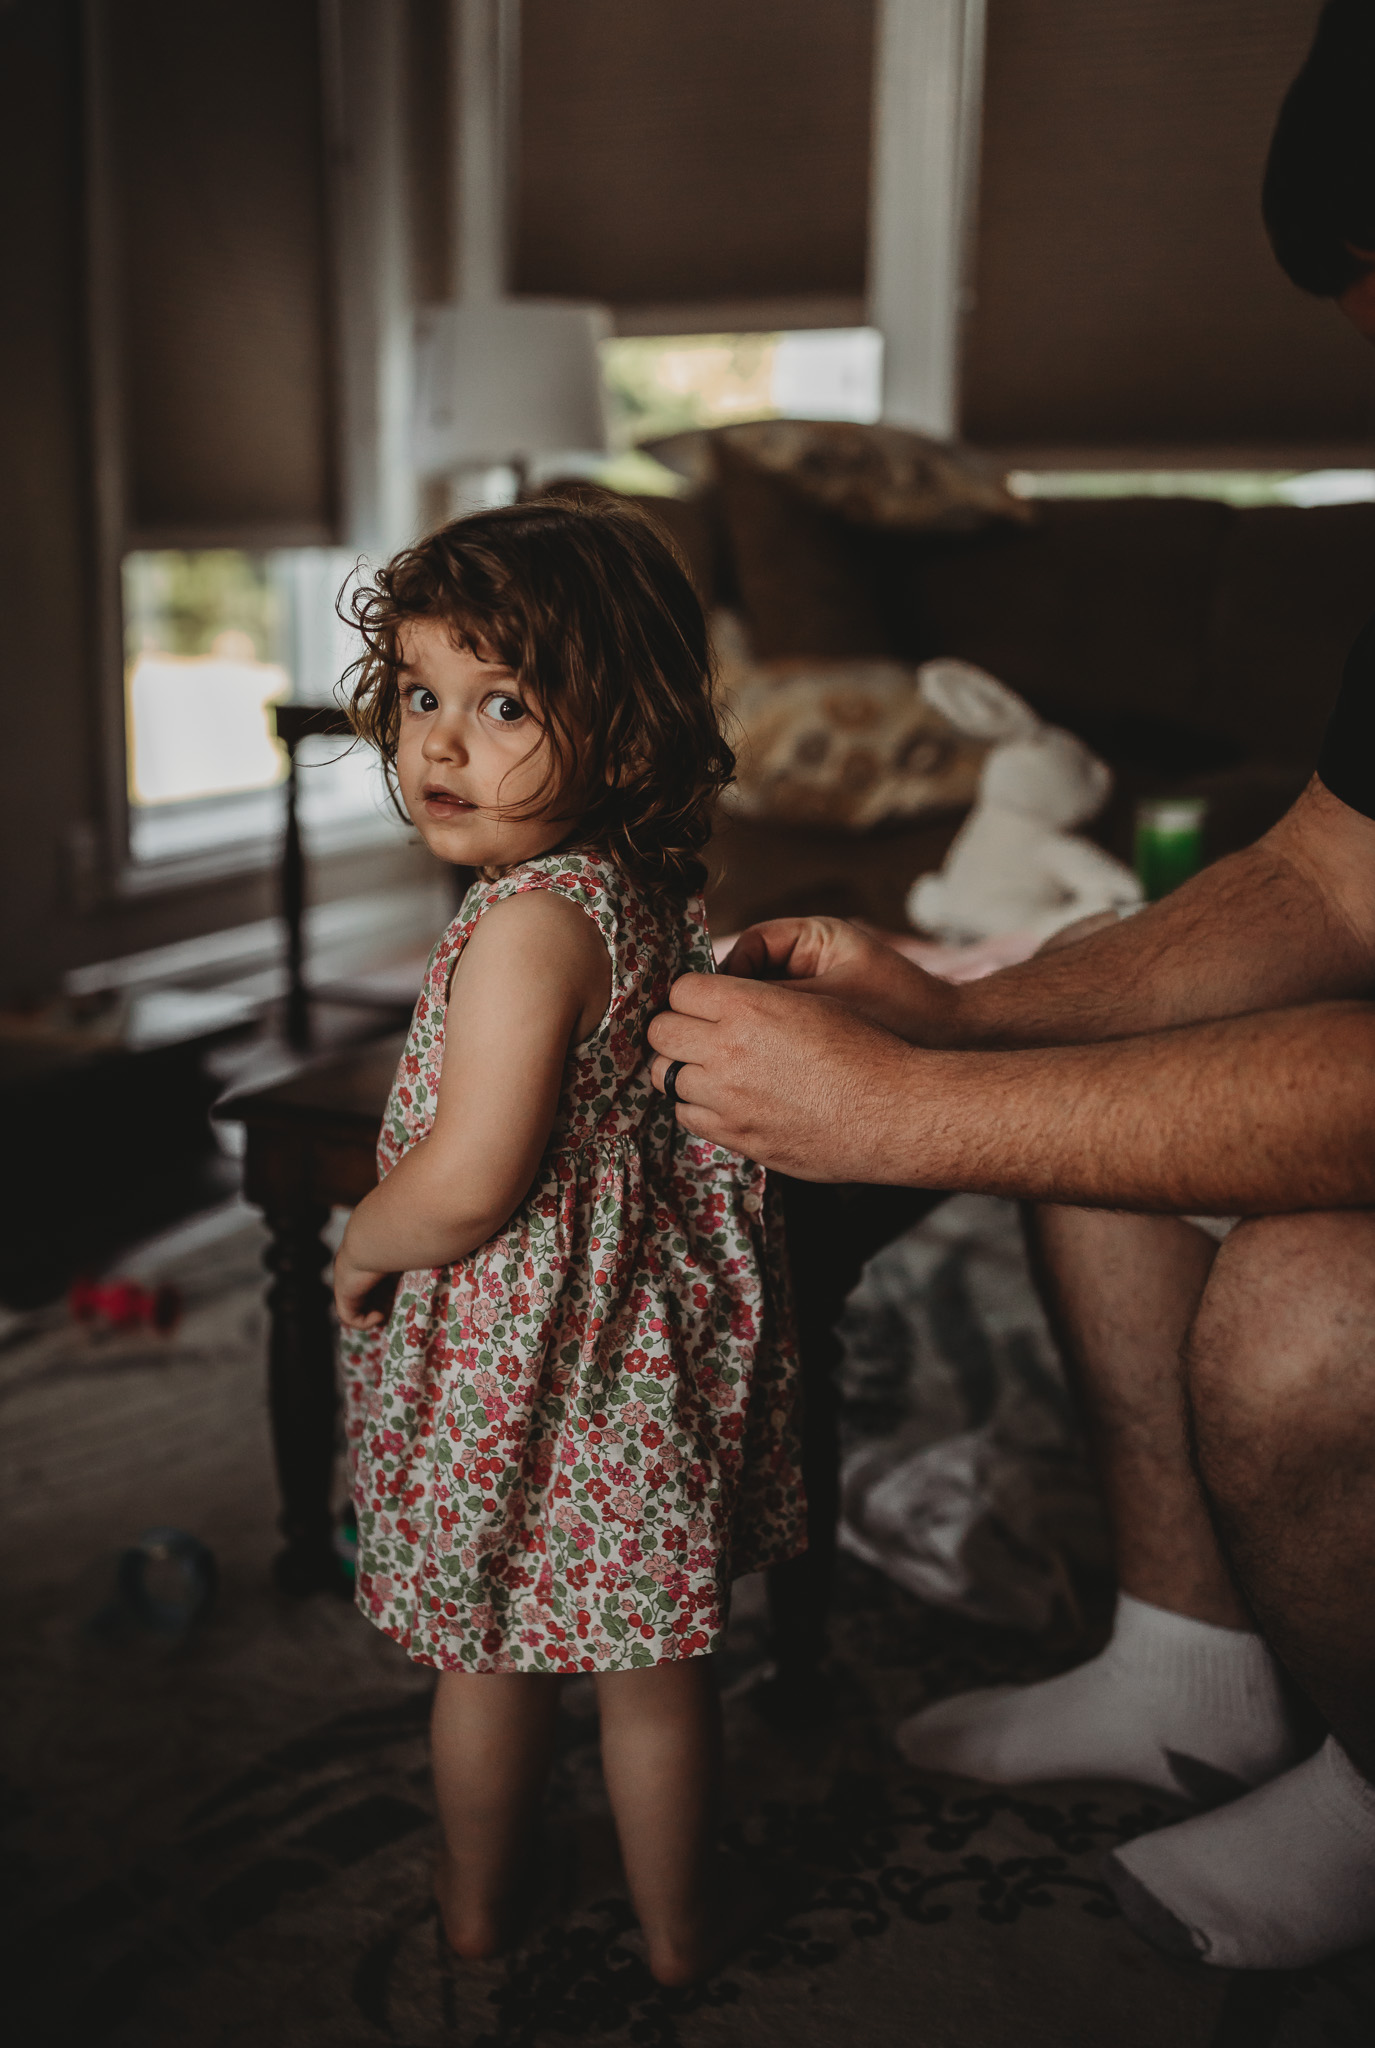 dad dressing little girl